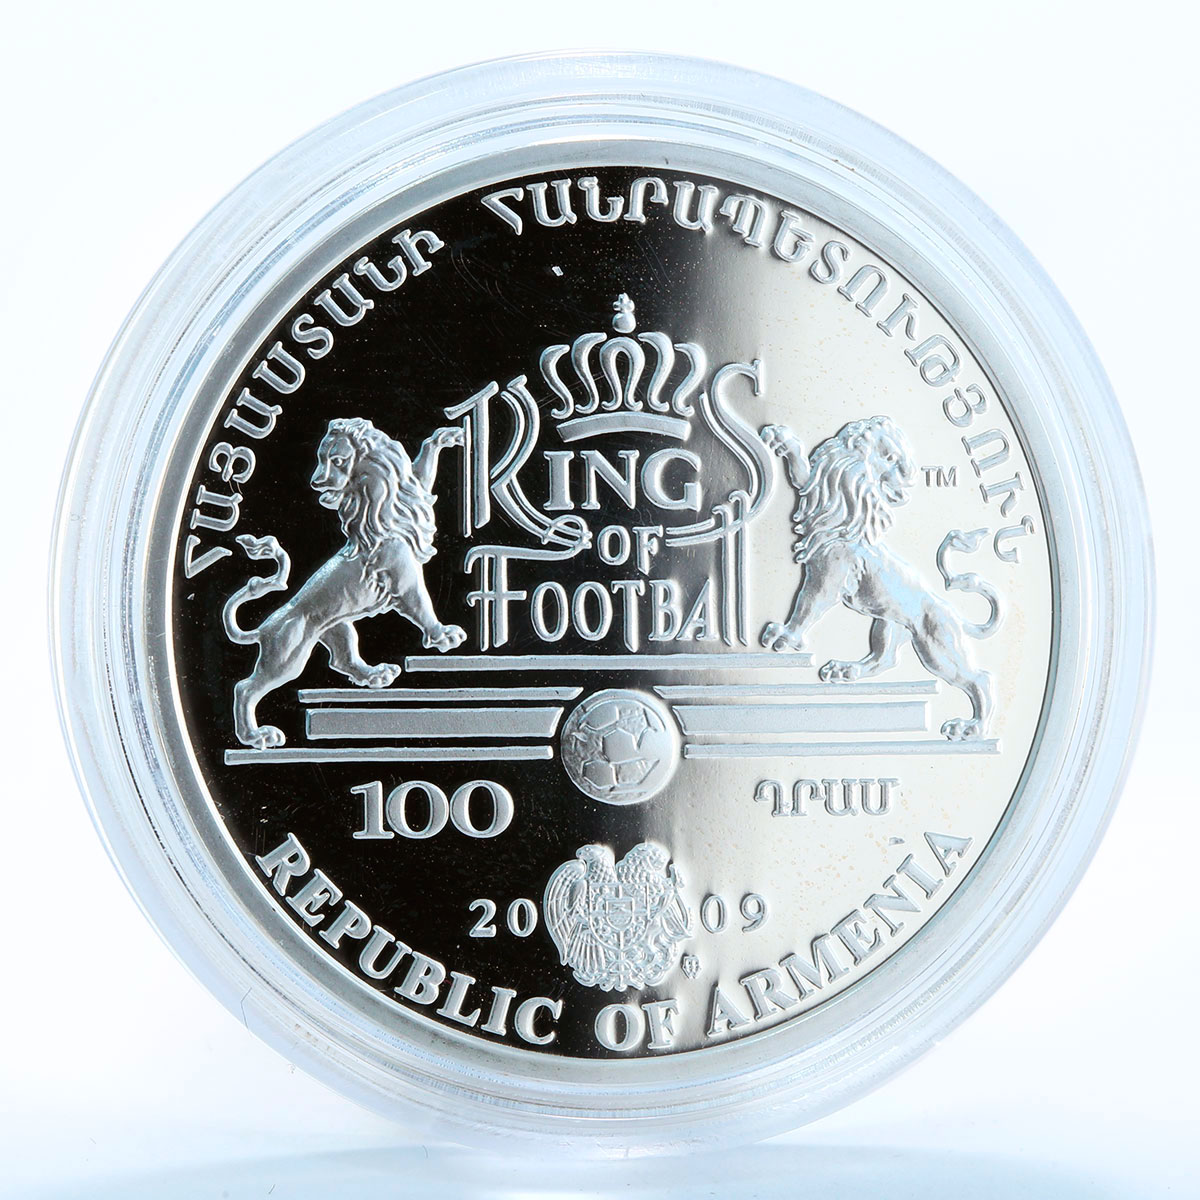 Armenia 100 drams Zbigniew Boniek Kings of Football silver proof coin 2008